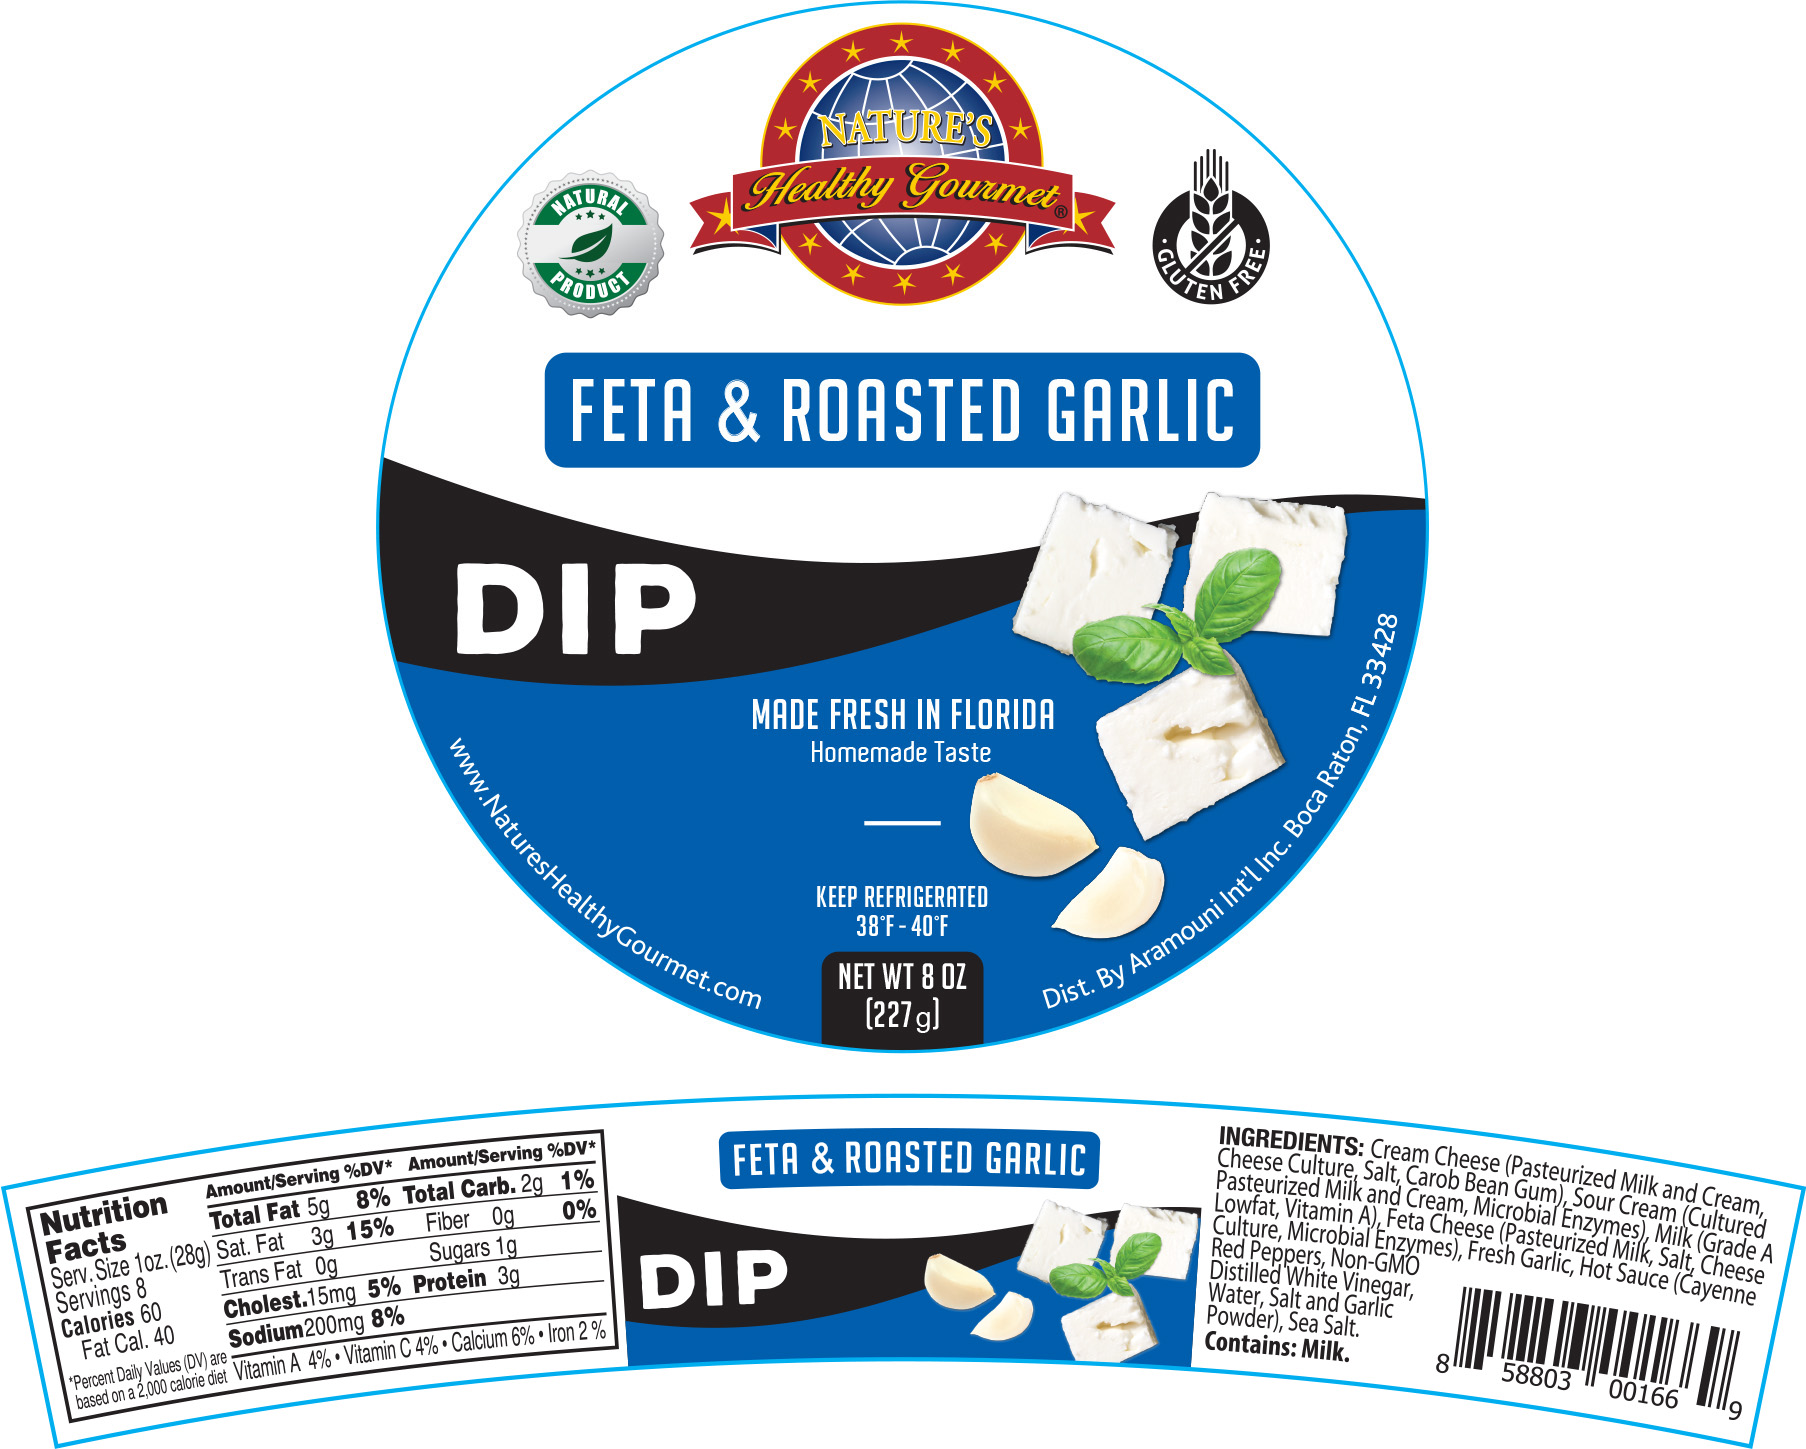 Nature's Feta Roasted Garlic Dip